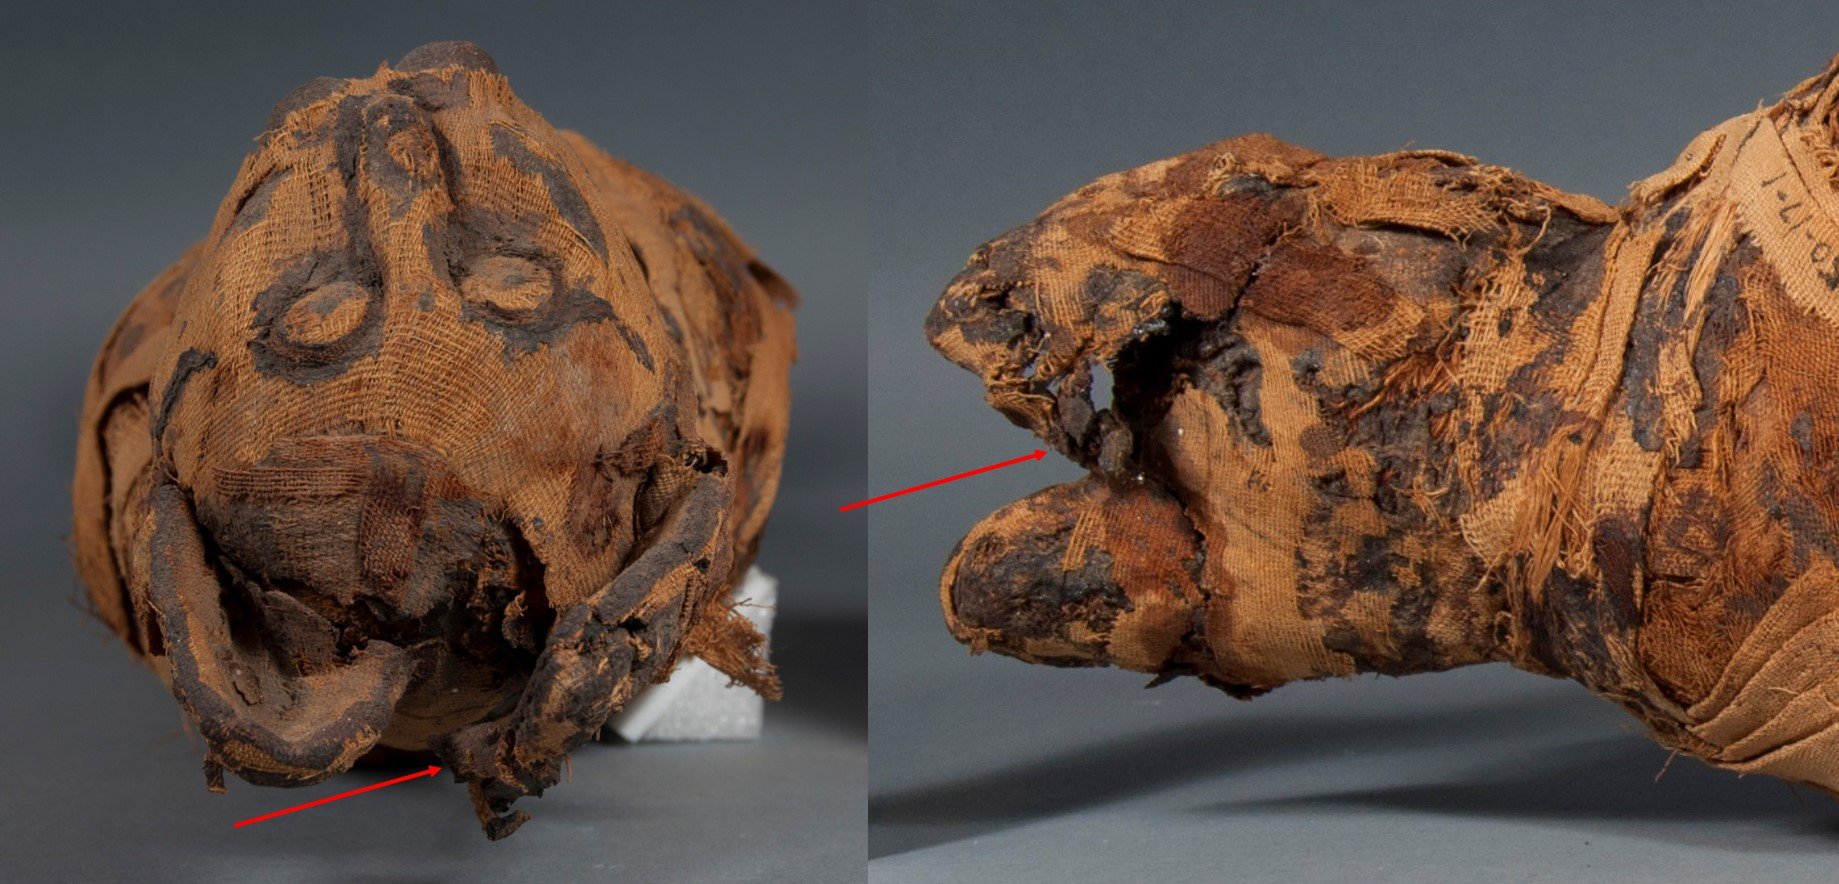 Two views of the cat mummy's head, with red arrows pointing to the mangled ear